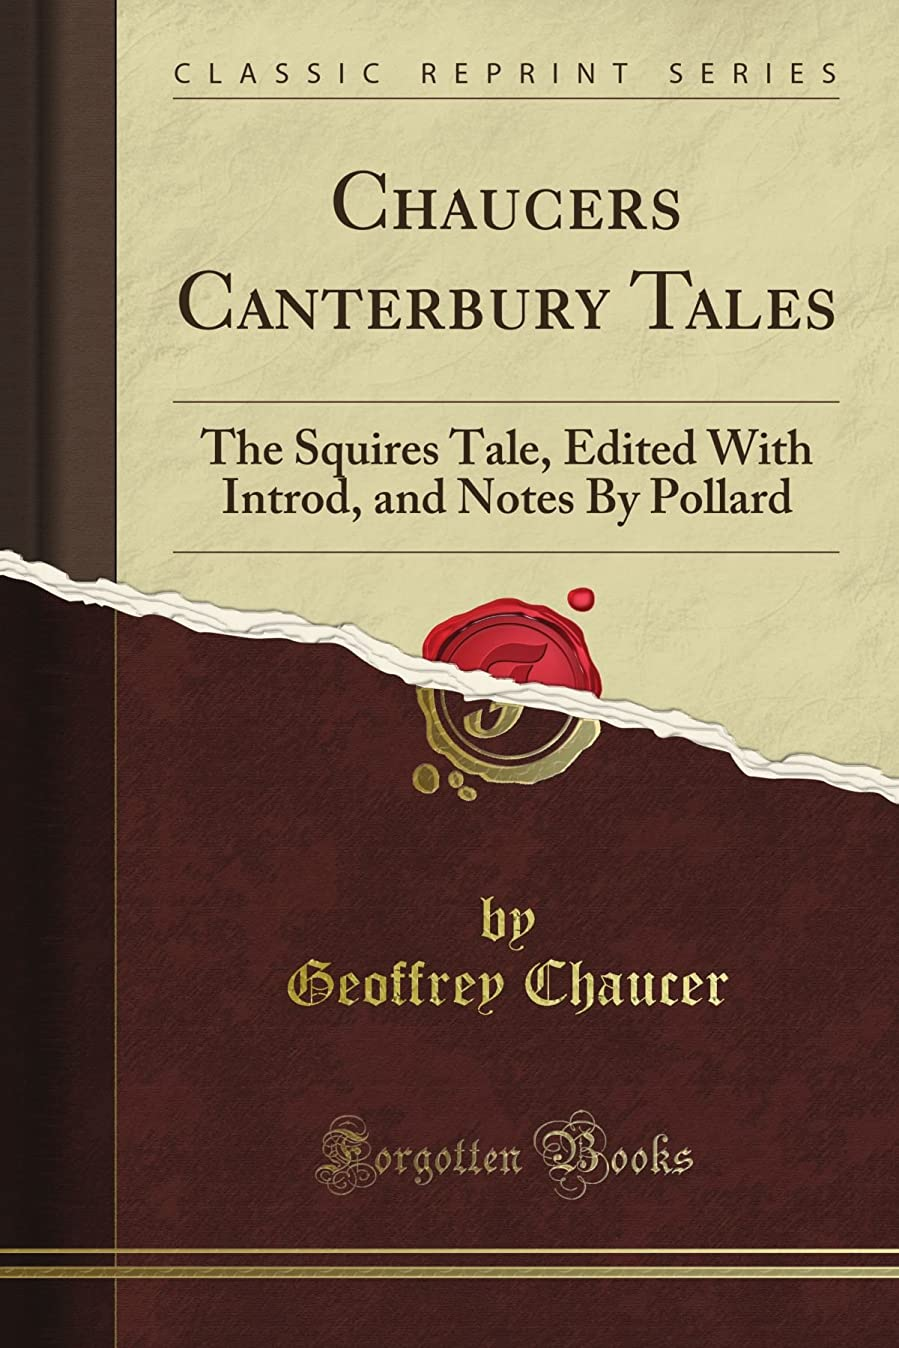 序文死ぬ統治可能Chaucer's Canterbury Tales: The Squire's Tale, Edited With Introd, and Notes By Pollard (Classic Reprint)